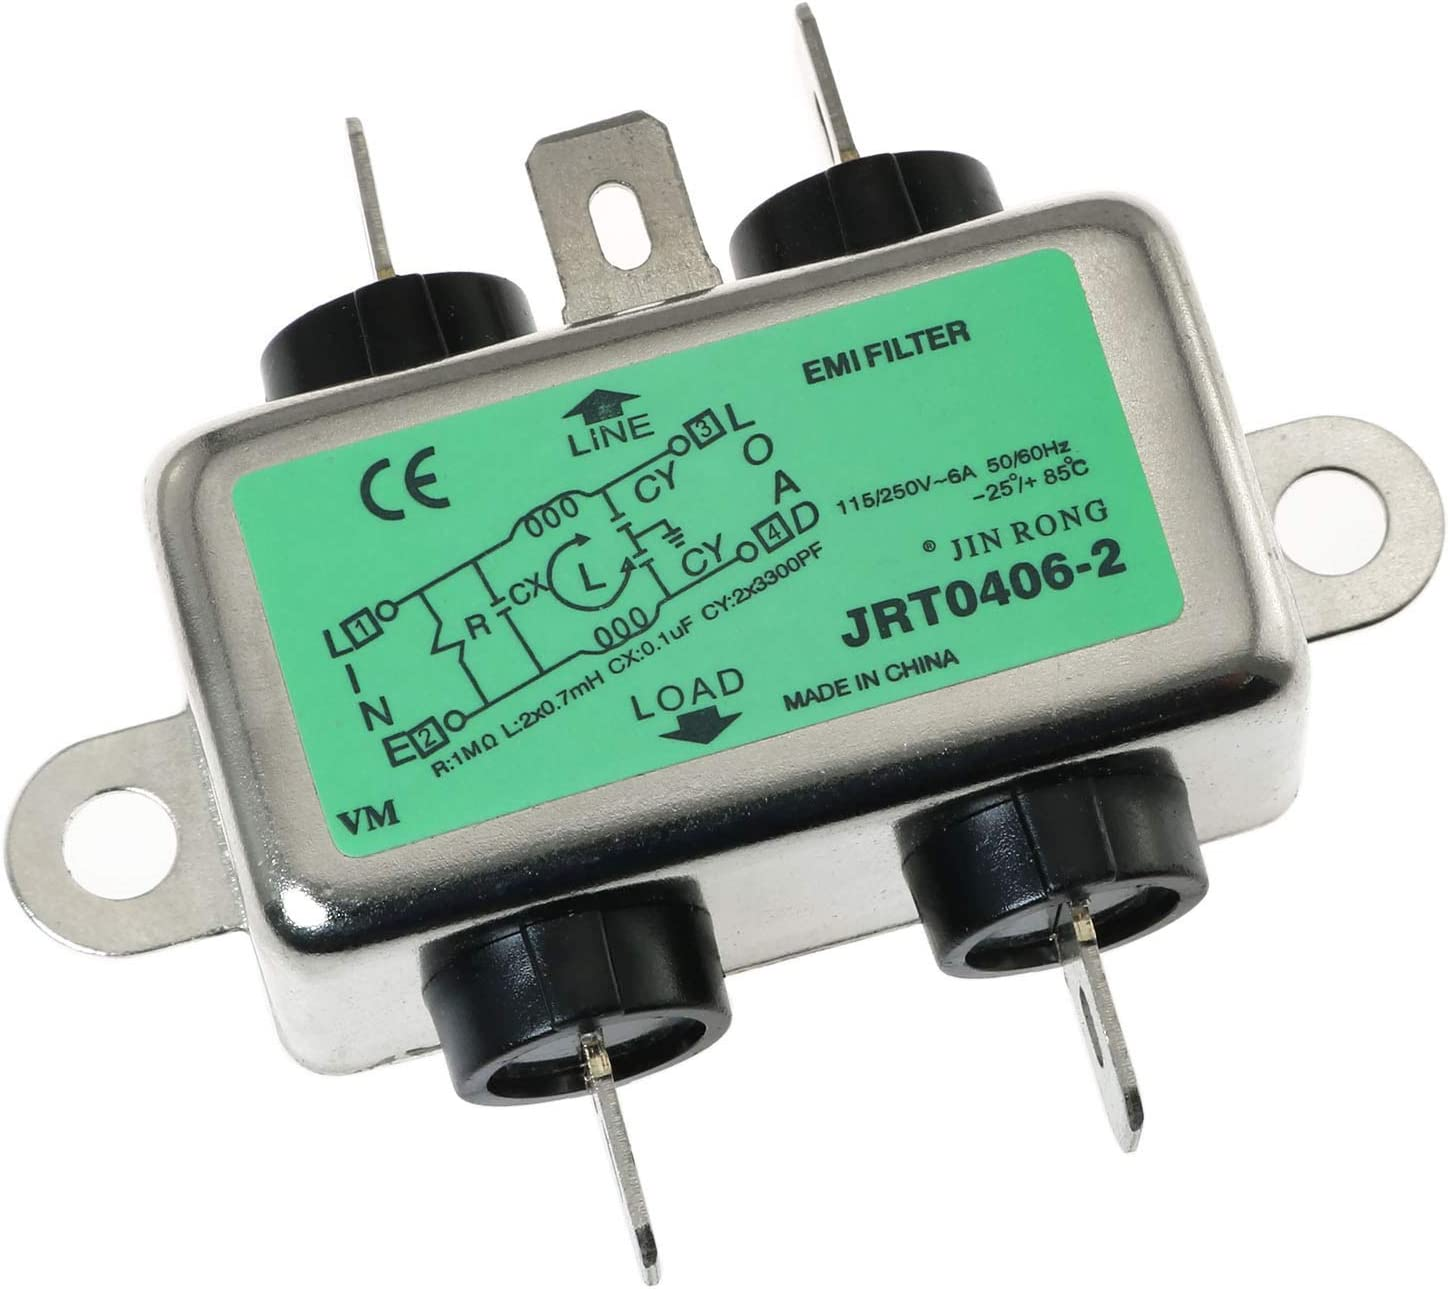 E-outstanding Power Line Filter JR-L006-N Max 83% OFF 6A Suppr Noise We OFFer at cheap prices 250V AC